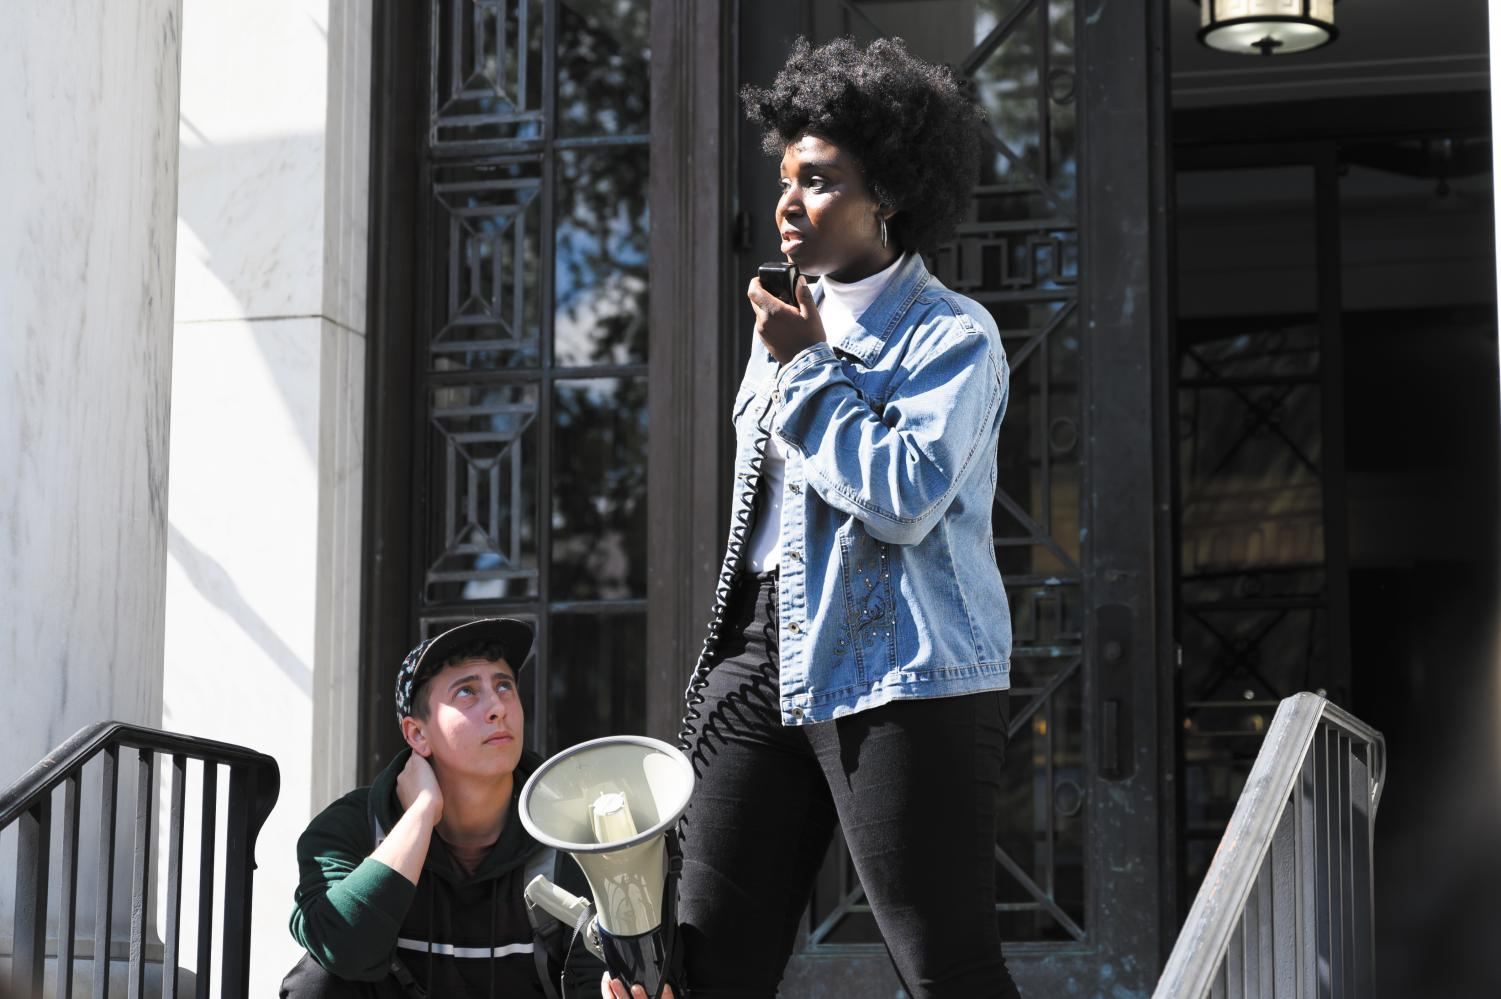 Senior Harmony Edosomwan speaks during a protest organized by NoNames for Justice and Queer Student Action at Waterman building, Sept. 25. The protest called for the release of the complete Campus Climate Survey data from the University.